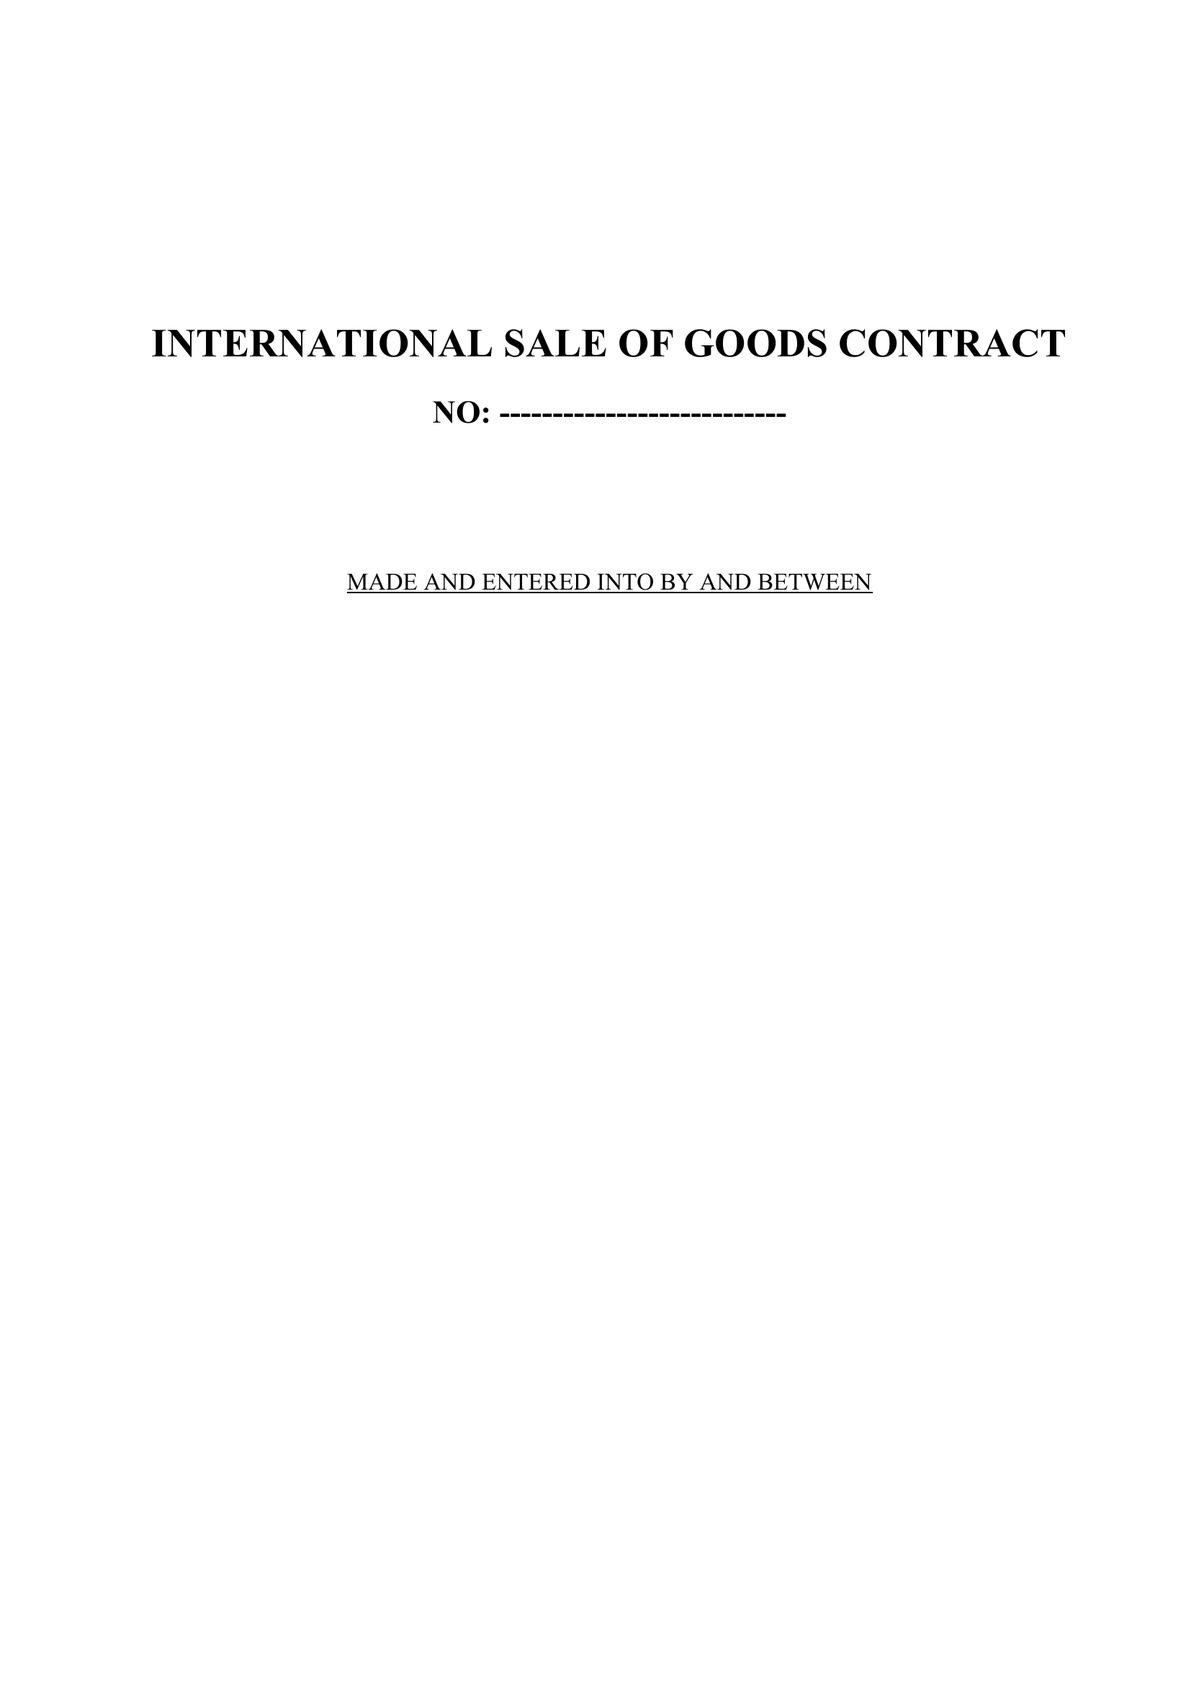 International Sale of Goods Contract-0